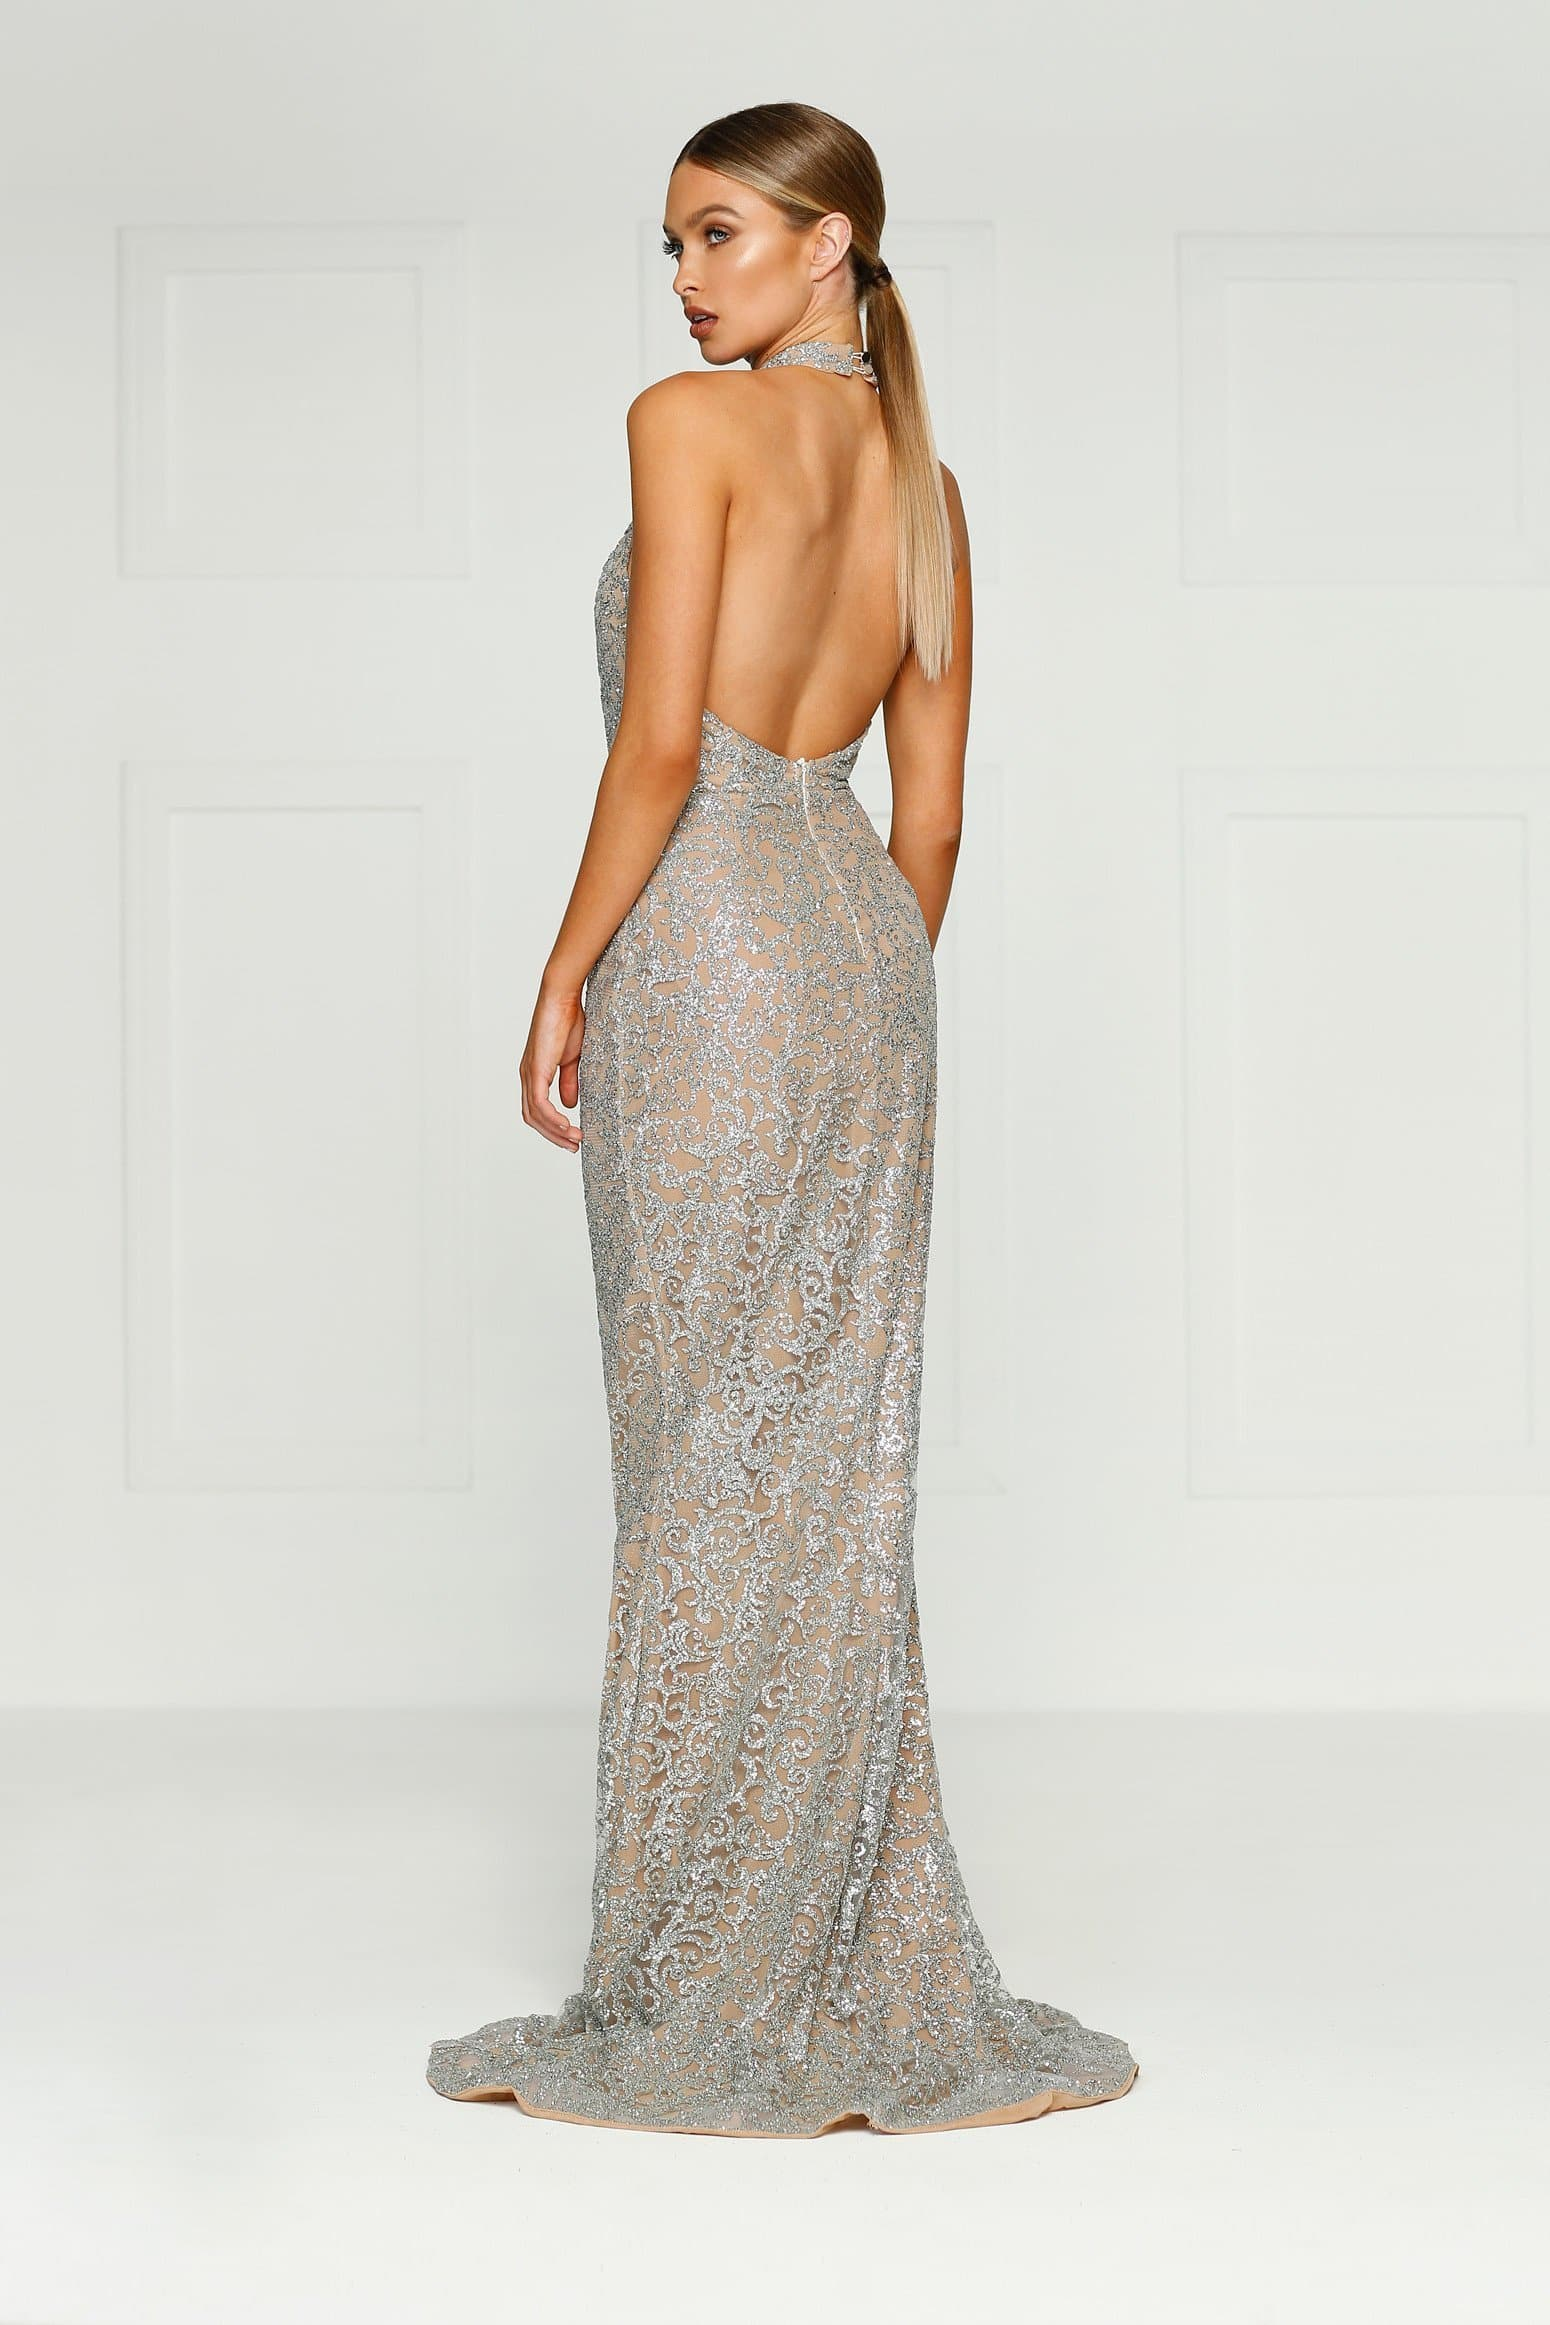 Leilani Gown - Body Con Fit Dress with Sparkling Applique Style